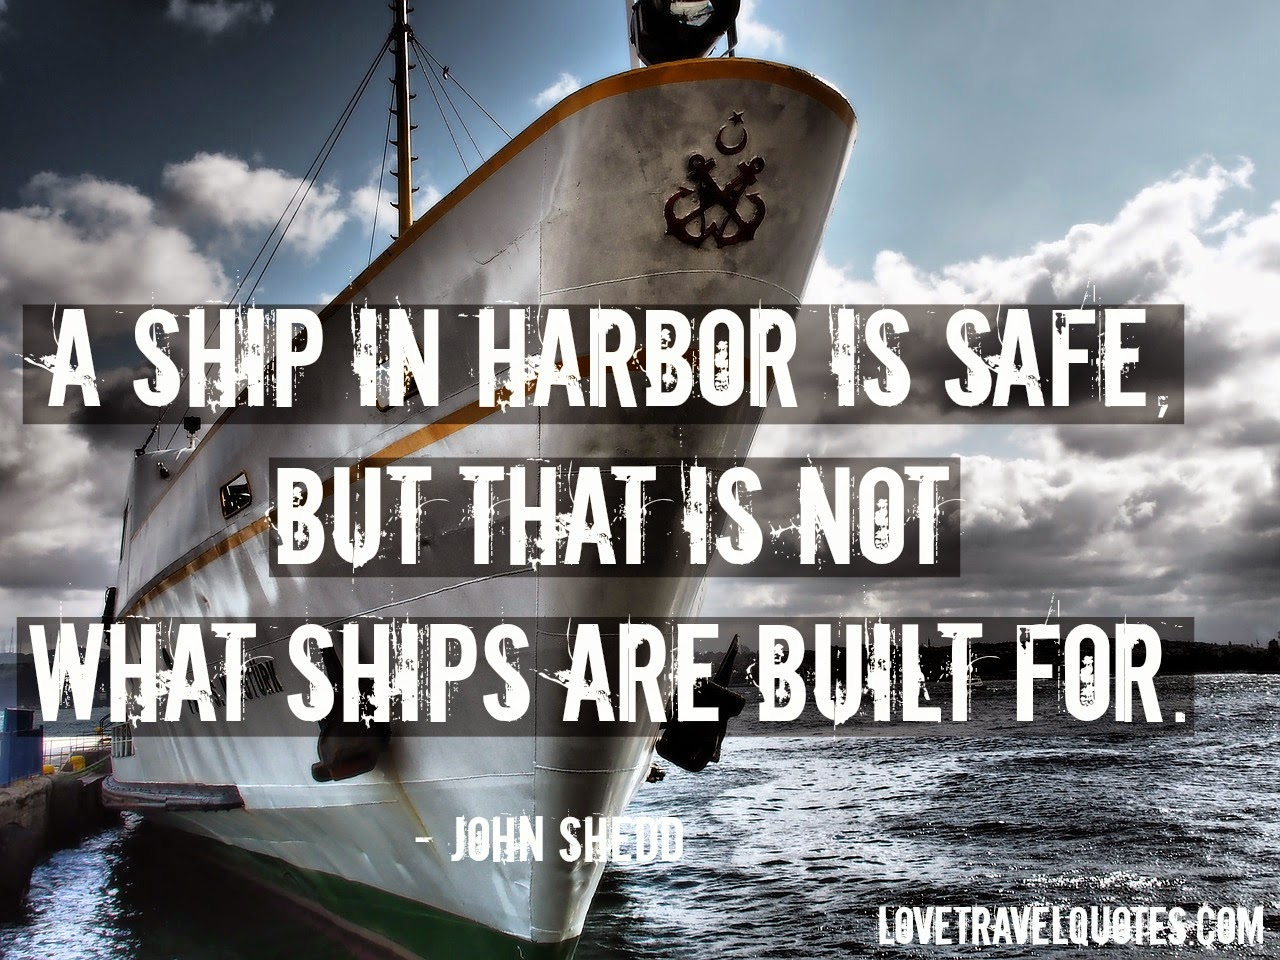 a ship in harbor is safe, but that is not what ships are built for